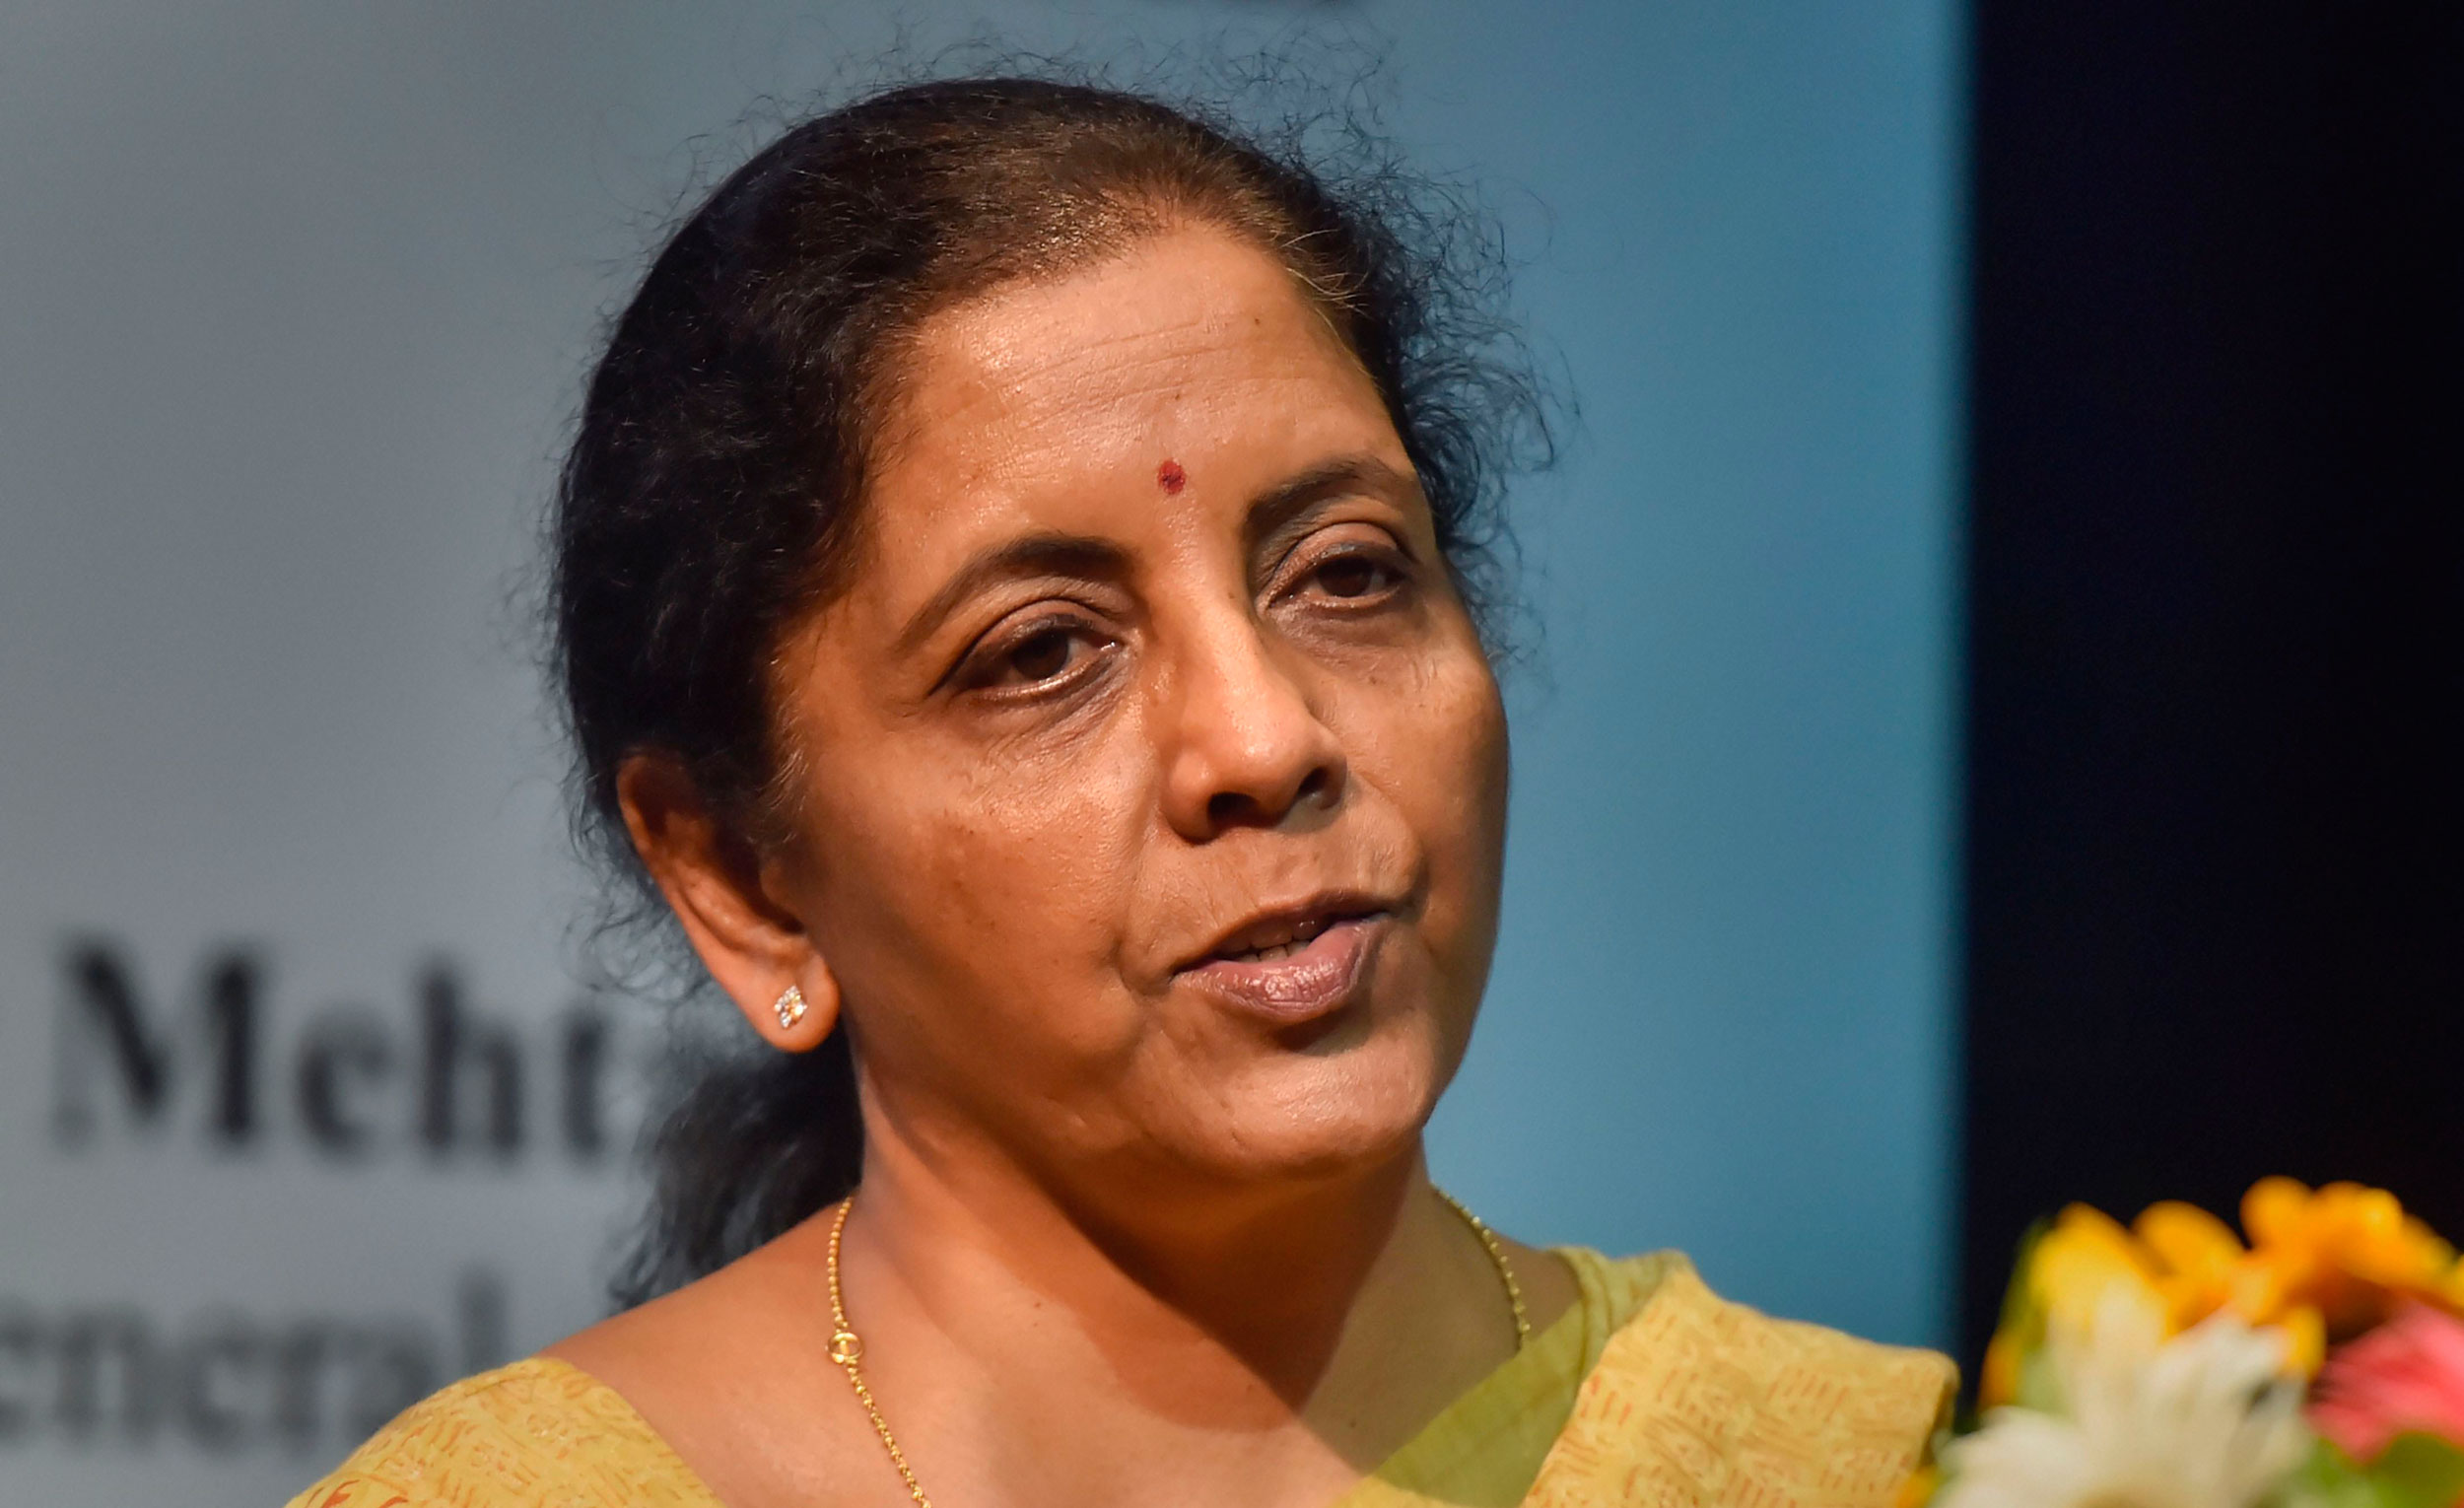 Finance minister Nirmala Sitharaman has said she will relook the fiscal calculations before the next budget in February before announcing the fiscal deficit target for the year.